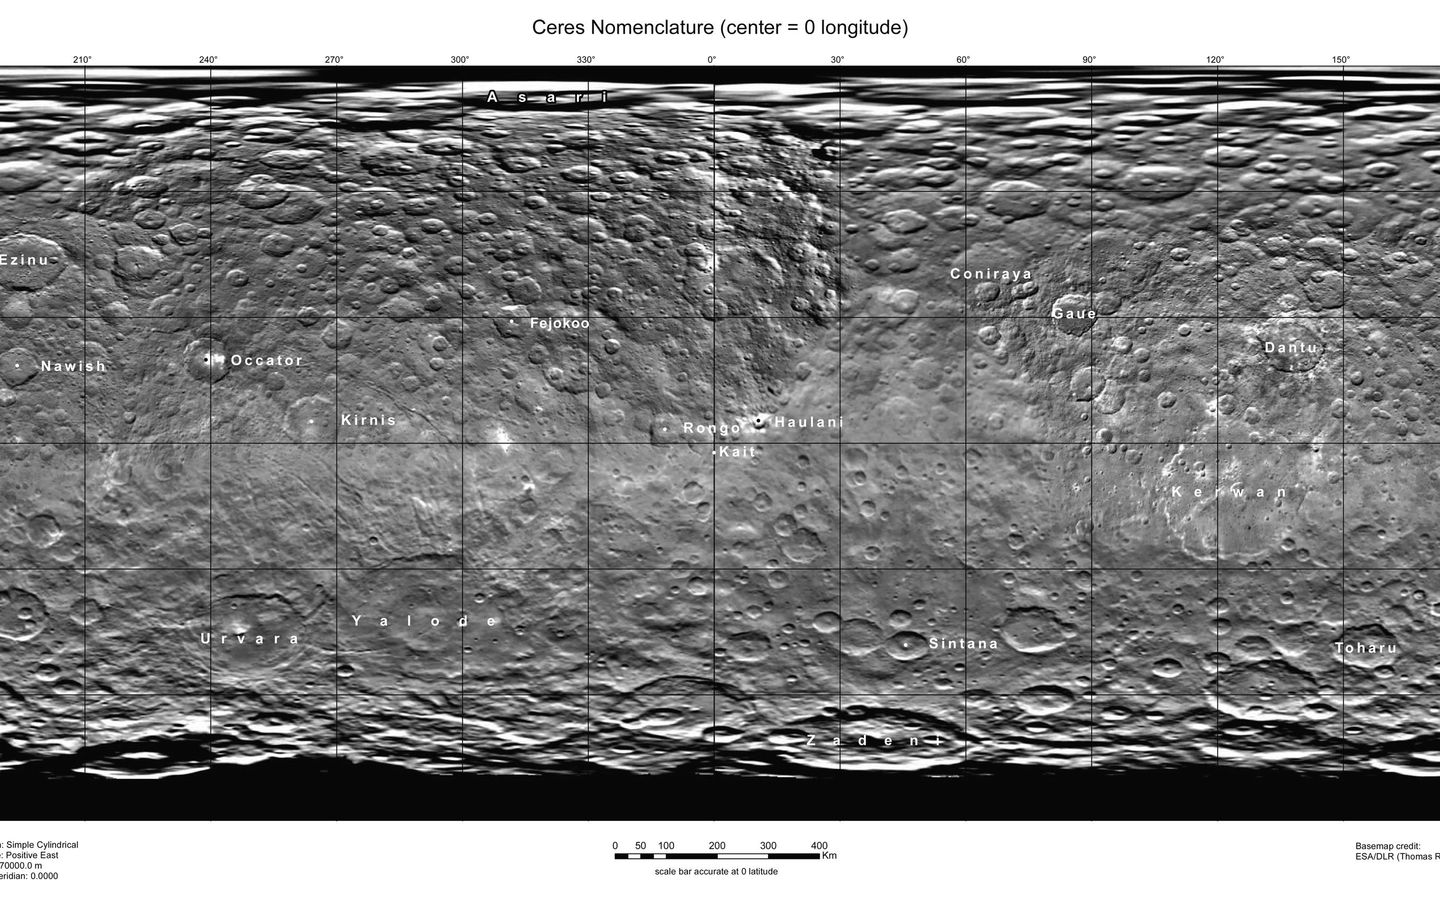 Mission Dawn/Ceres - Page 3 PIA19625-1440x900